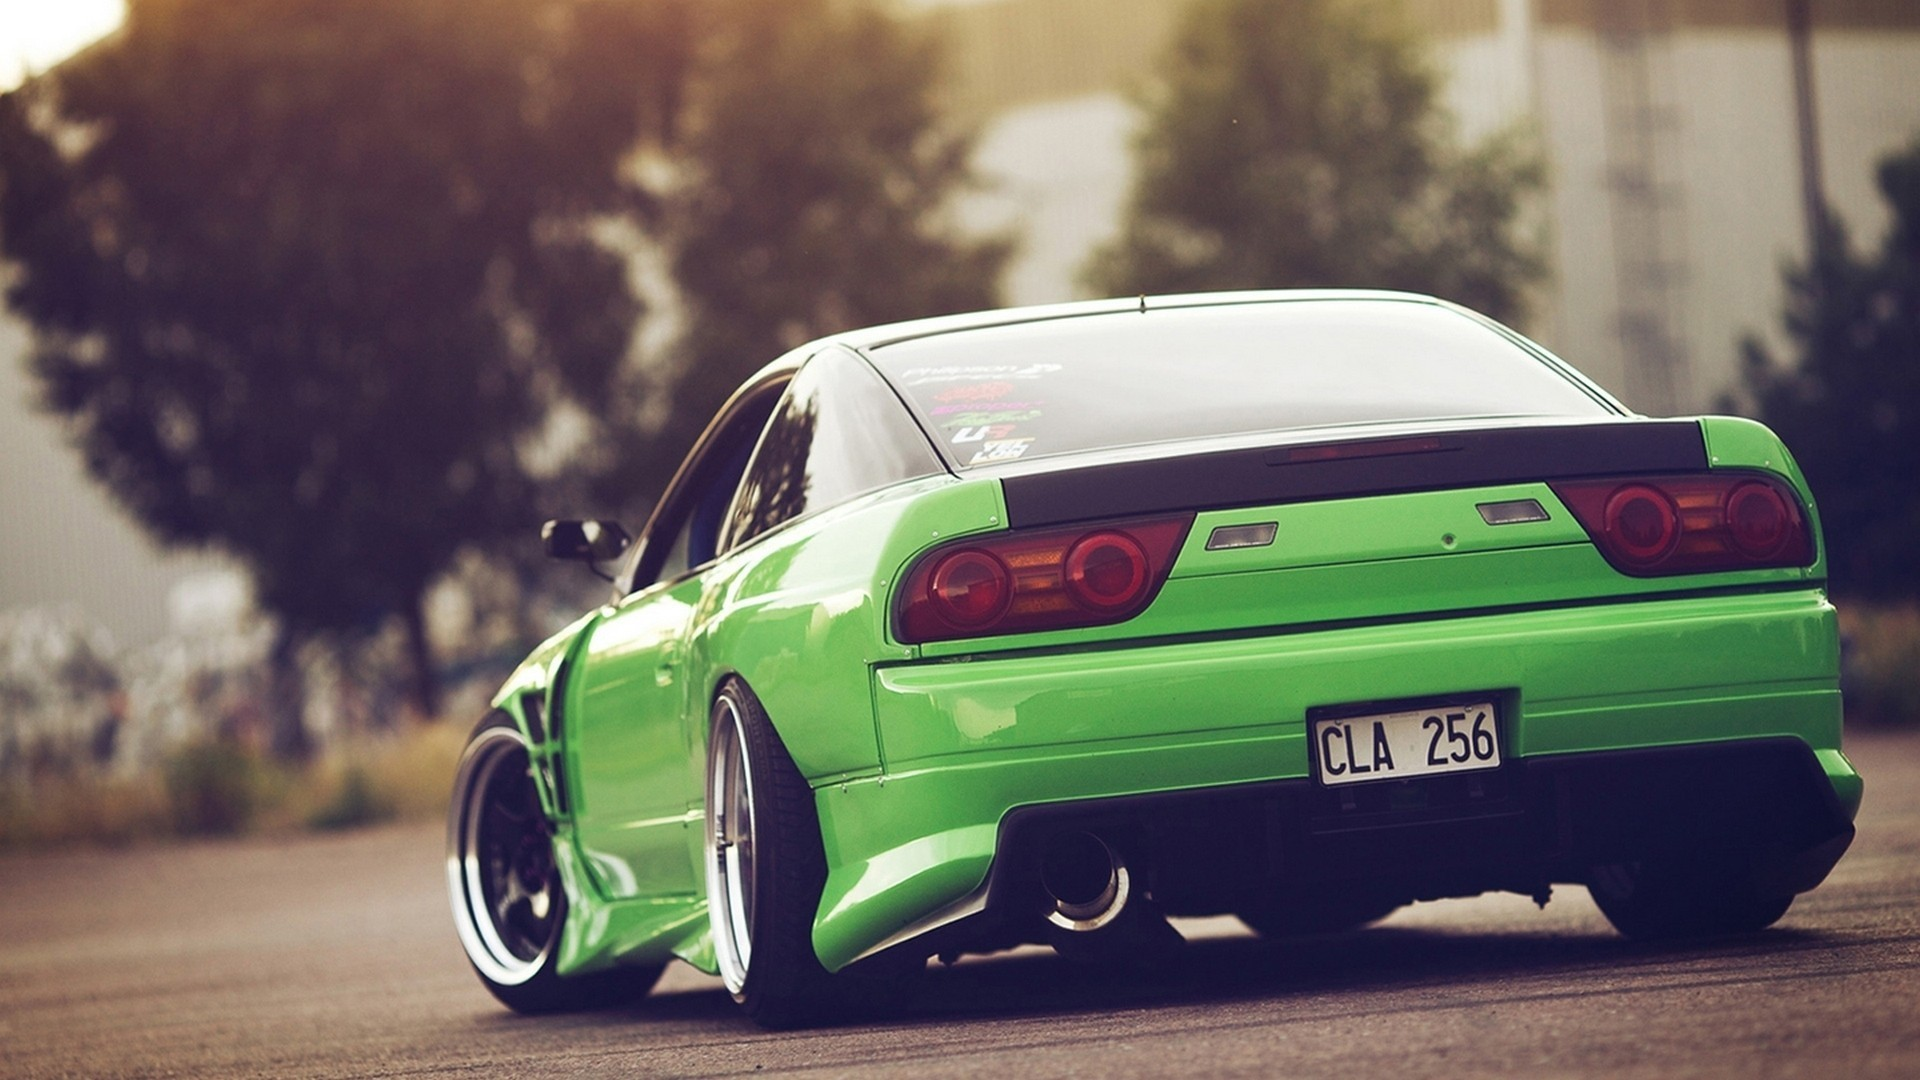 Res: 1920x1080, Nissan, 240sx, Green, JDM, Car, Stance Wallpapers HD / Desktop and Mobile  Backgrounds